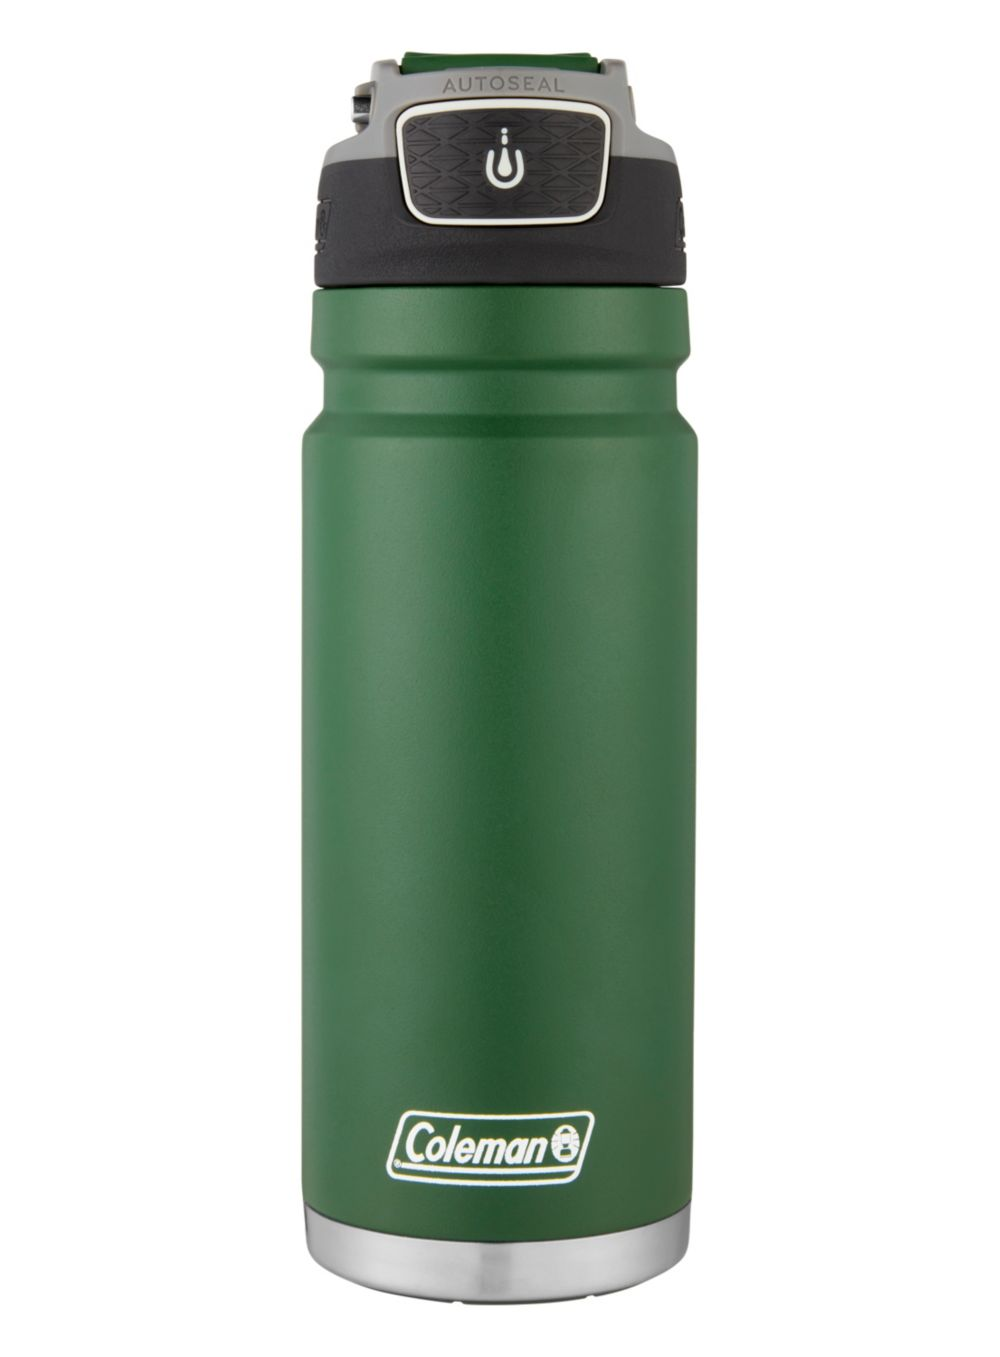 ReCharge Stainless Steel Vacuum AUTOSEAL Insulated Travel Mug